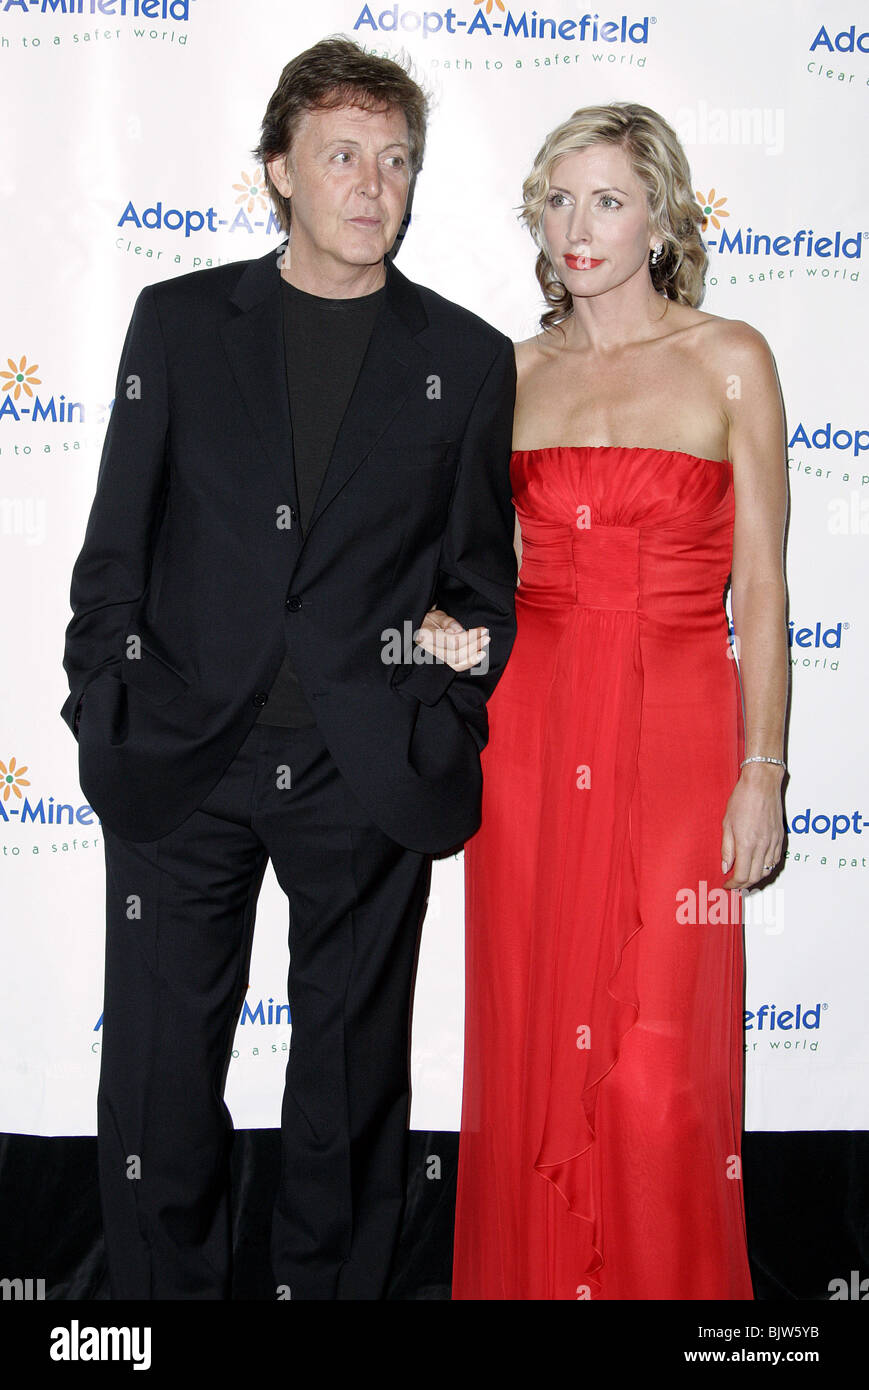 PAUL MCCARTNEY HEATHER MILLS 4TH ADOPT A MINEFIELD GALA CENTURY PLAZA HOTEL CITY LOS ANGELES USA 15 Octob